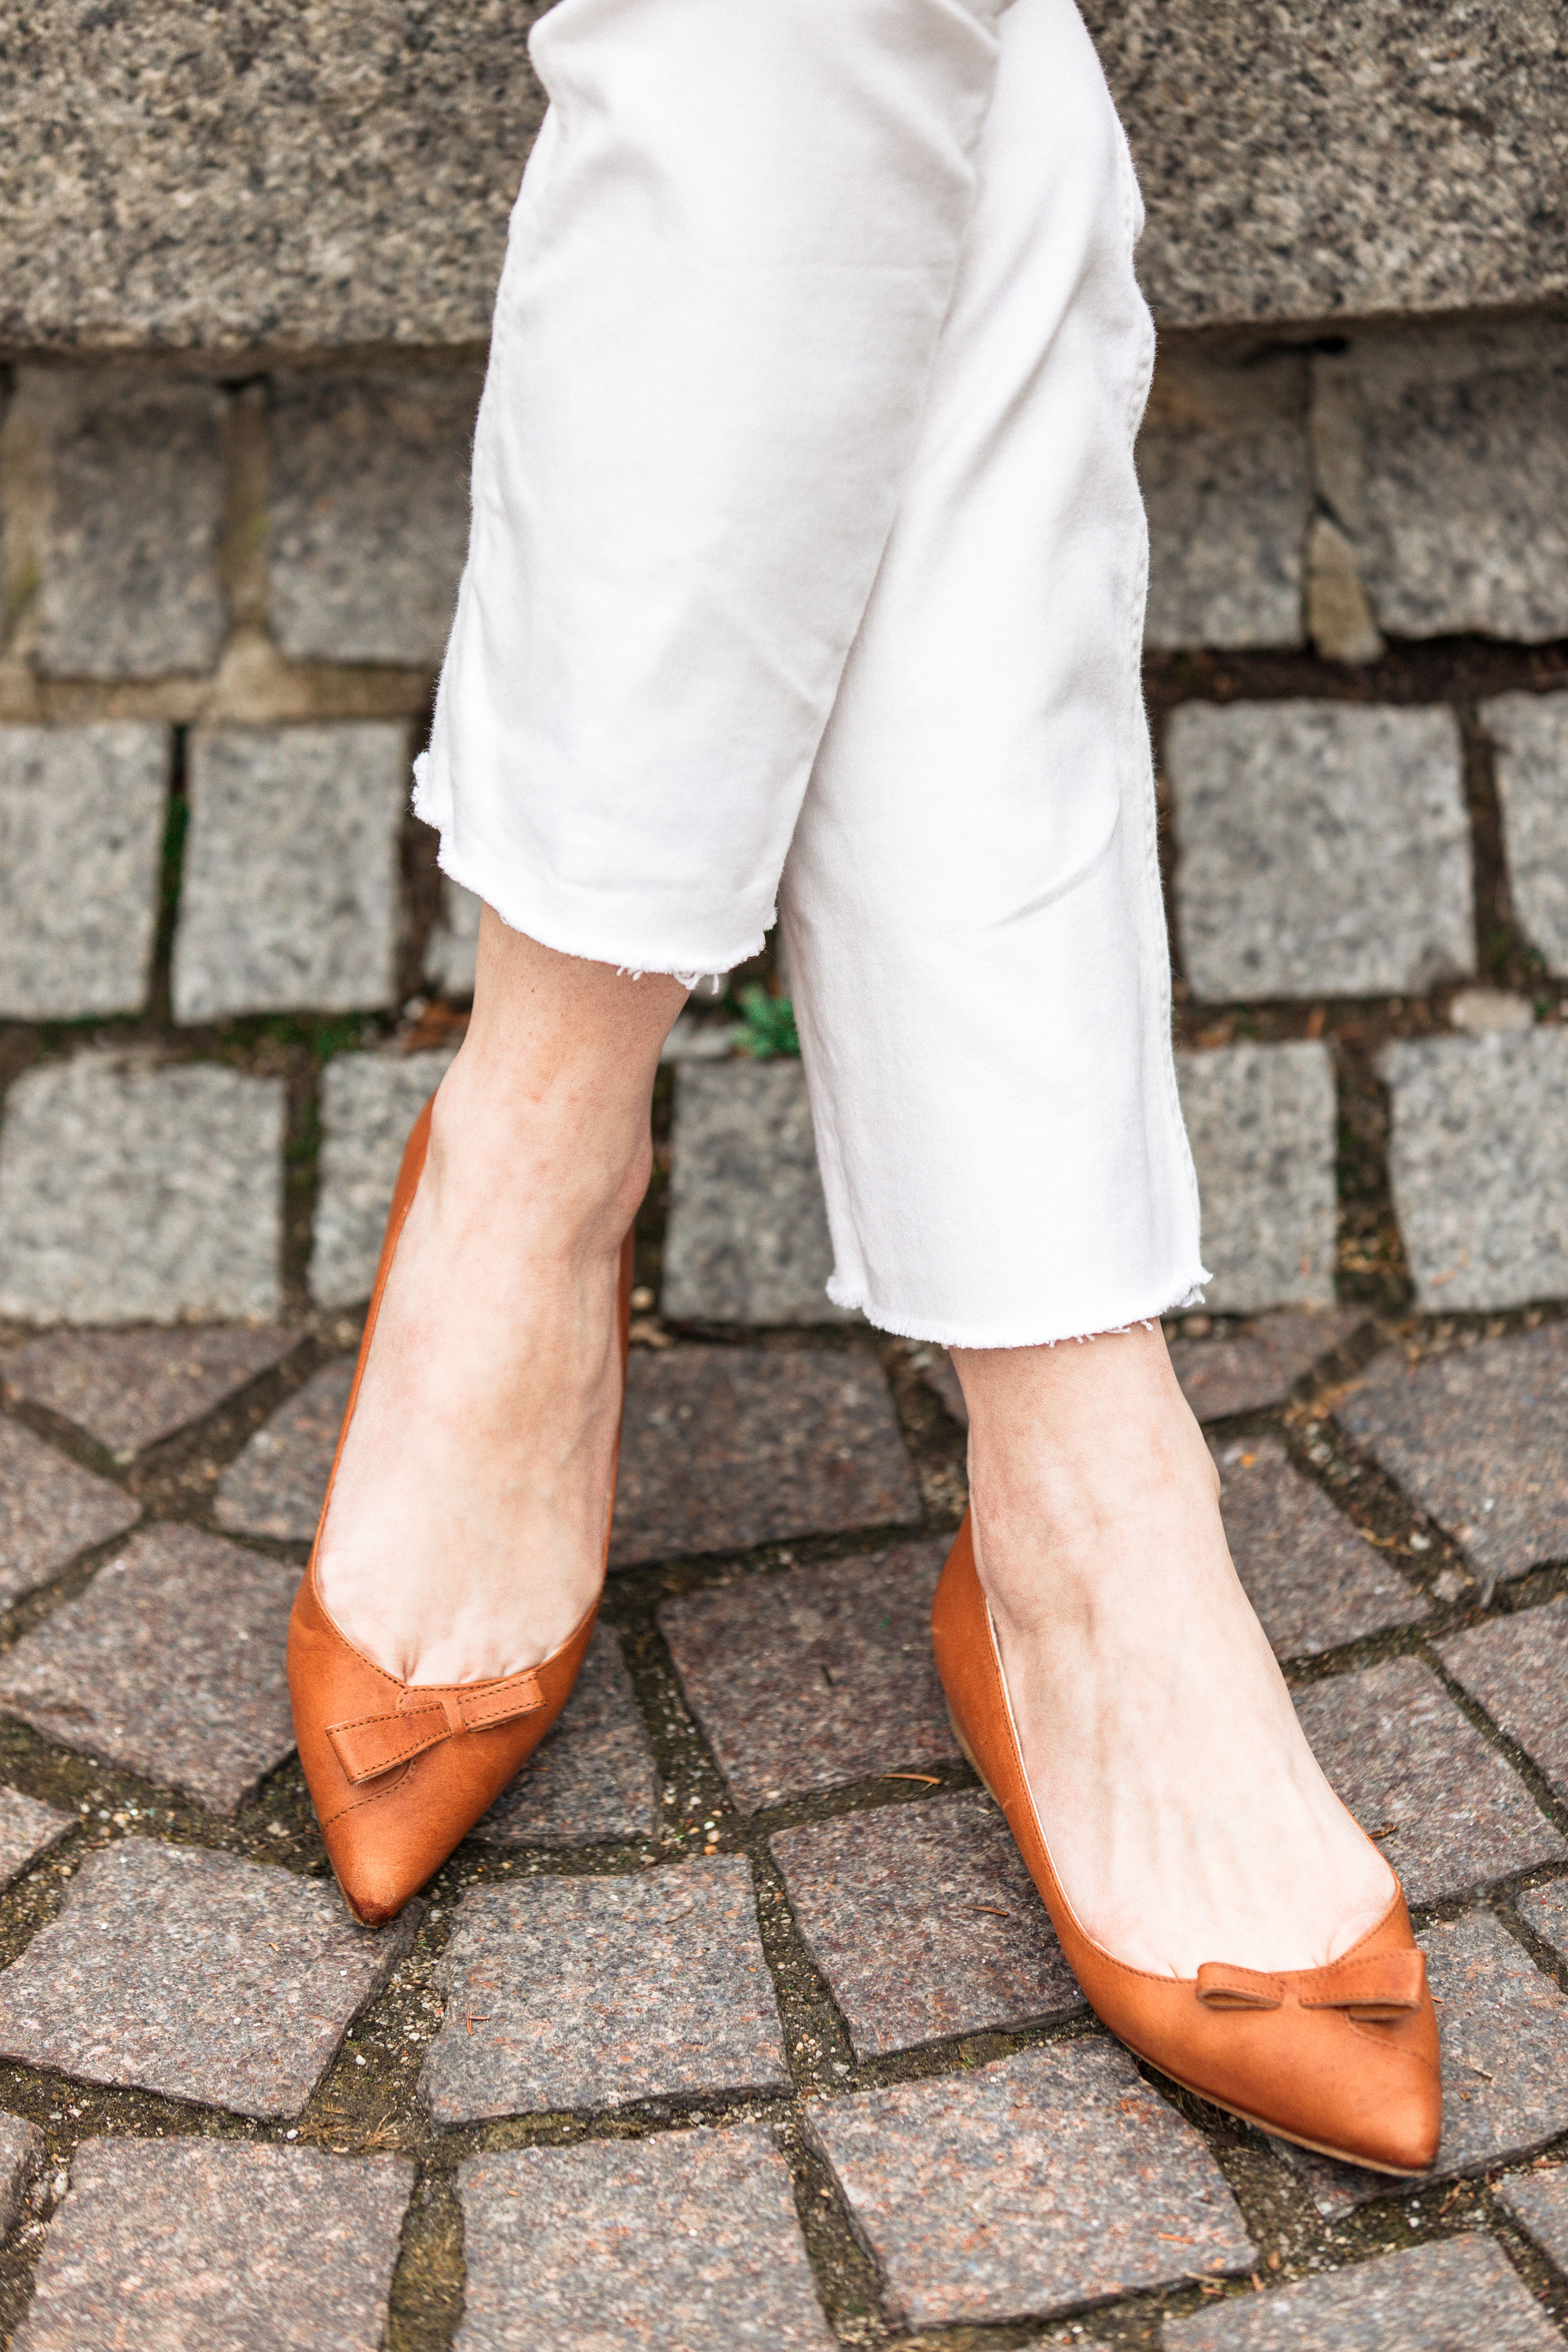 My Everyday Shoes - Classy Girls Wear